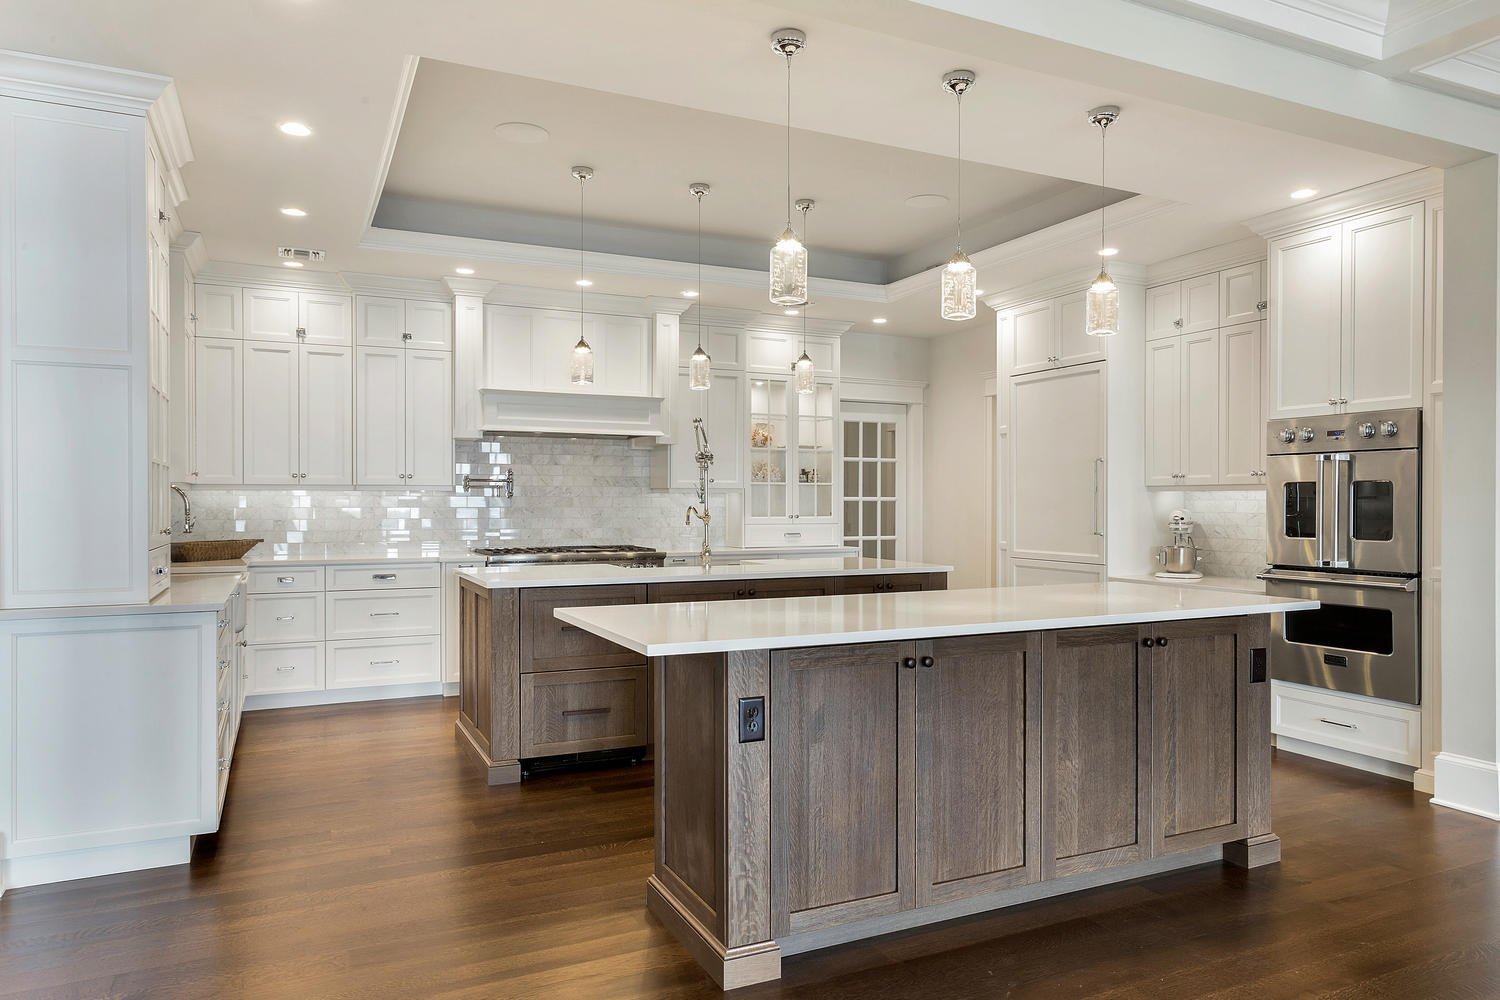 white and driftwood kitchen kitchen islands  u0026 peninsulas   design line kitchens in sea girt nj  rh   designlinekitchens com